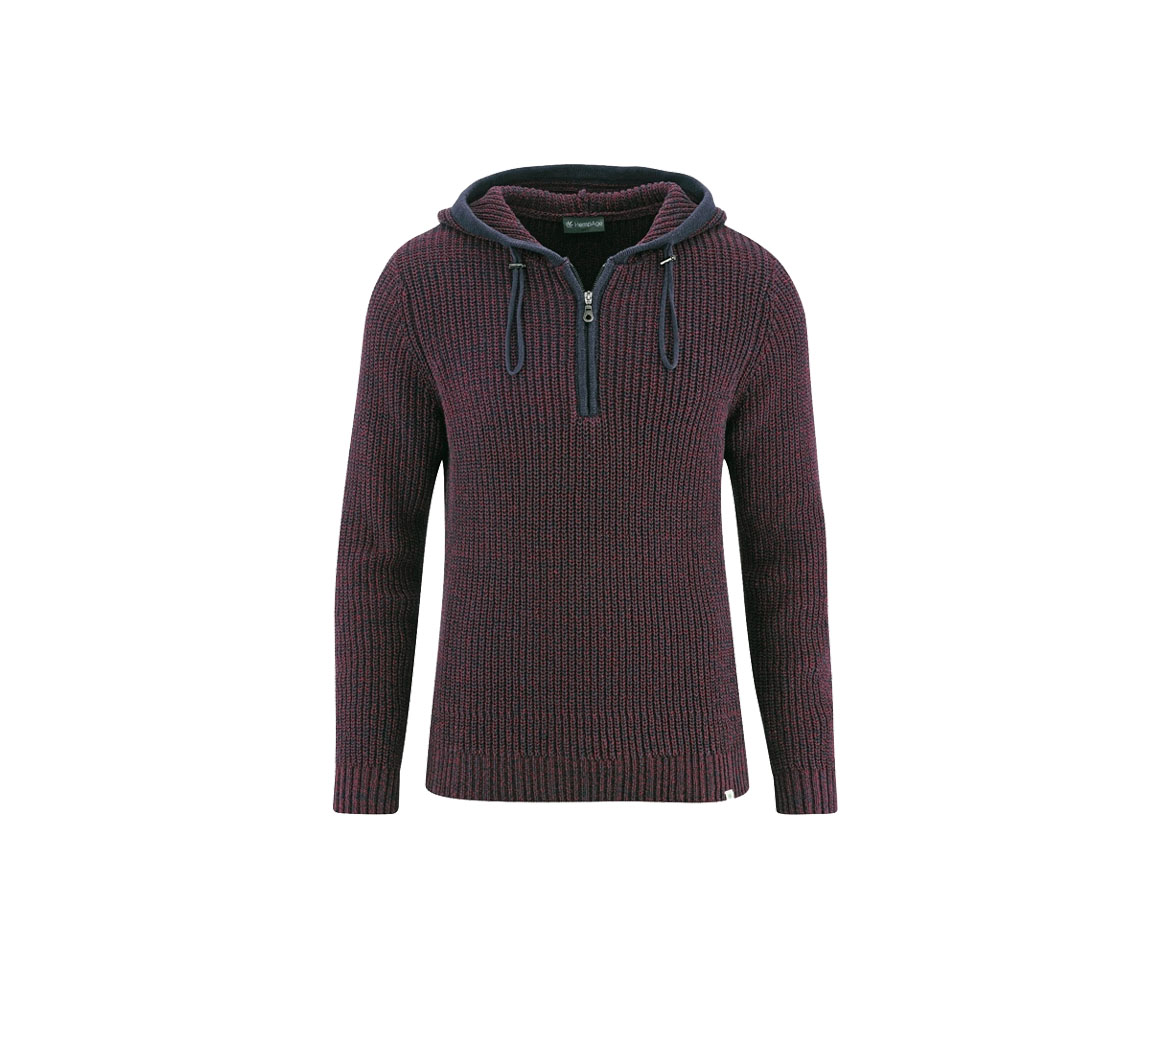 Pull en chanvre à capuche Pullover Hoody